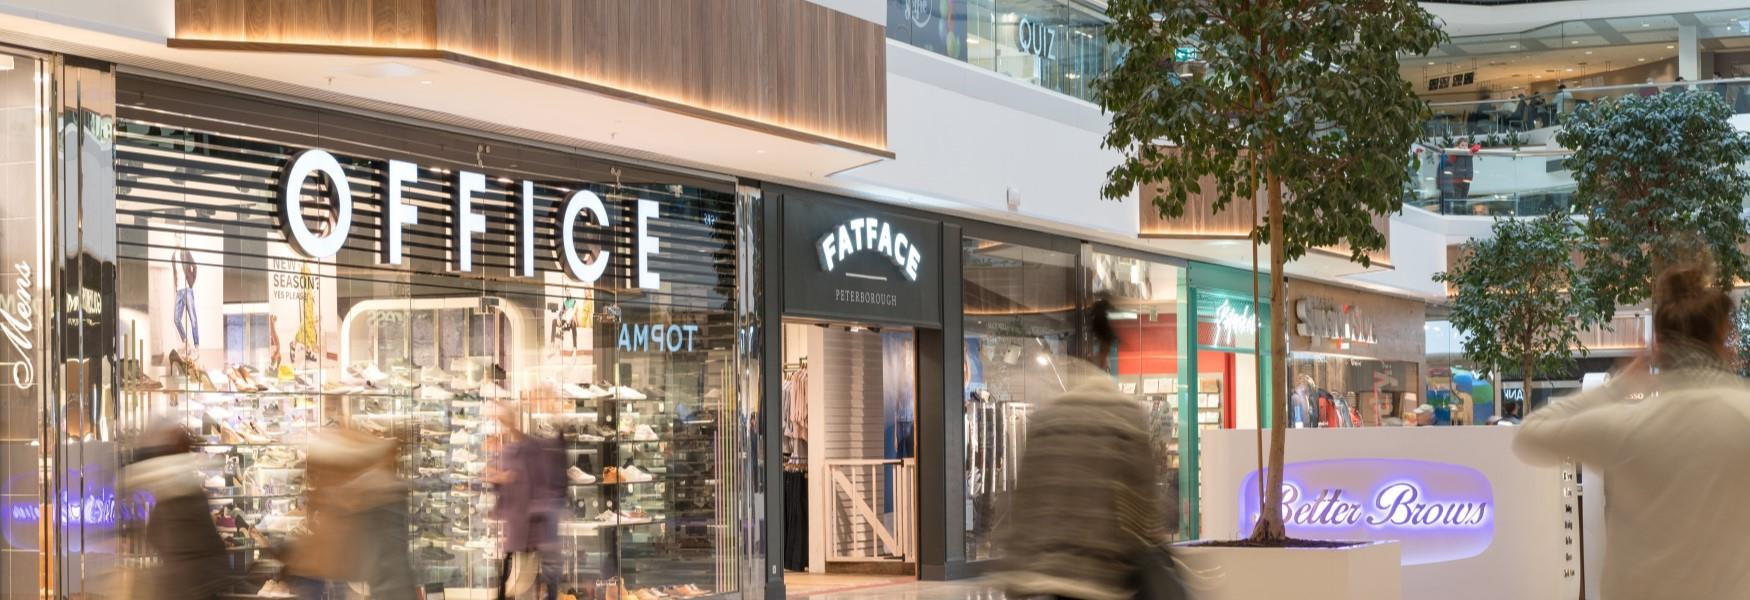 Inside Queensgate Shopping Centre - shops in the picture include Office, FatFace, Paperchase, Super Dry, Quiz, and Better Brows